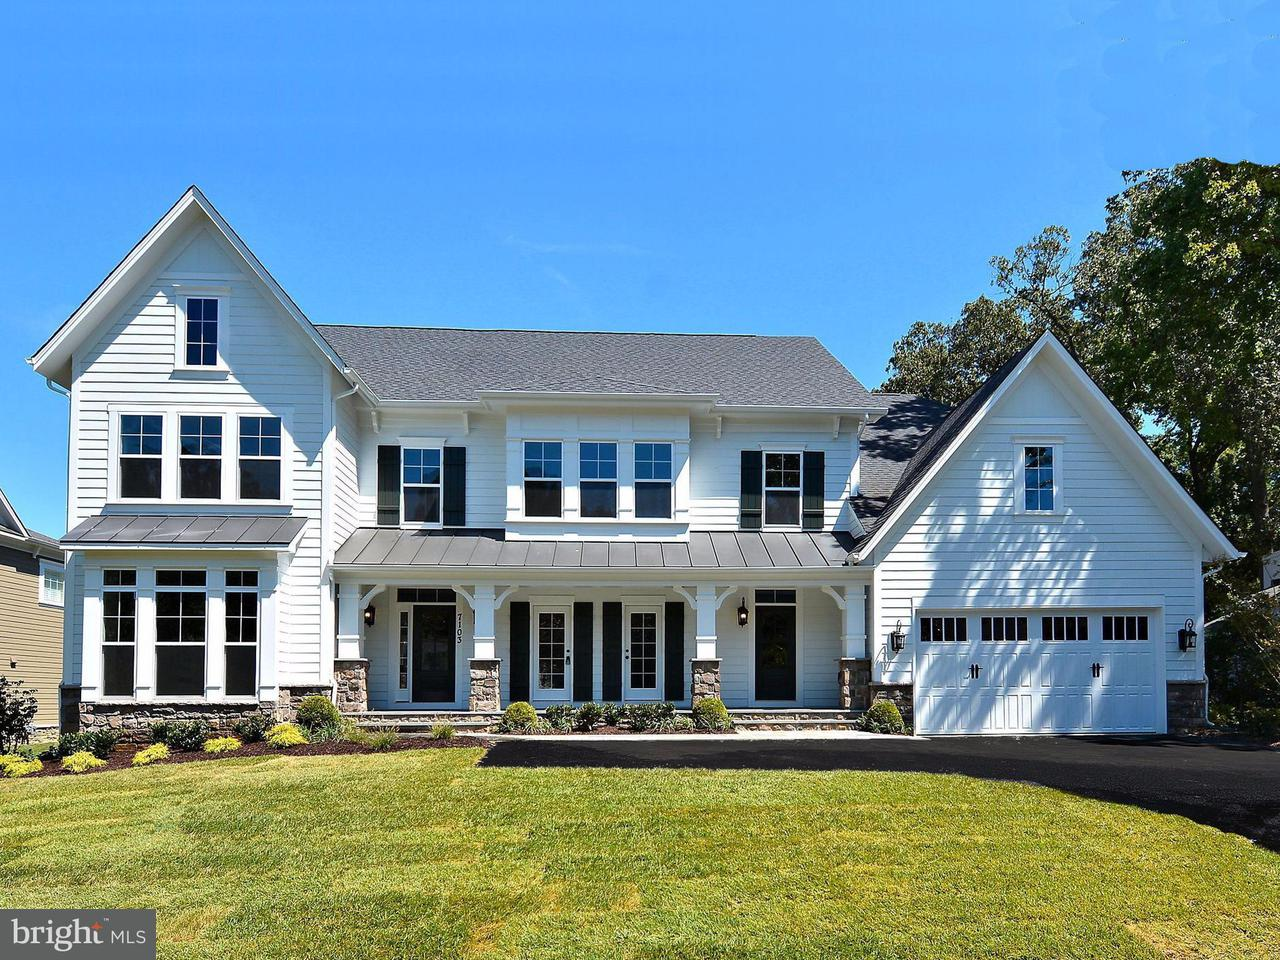 Single Family Home for Sale at 12464 MARGARET THOMAS Lane 12464 MARGARET THOMAS Lane Herndon, Virginia 20171 United States